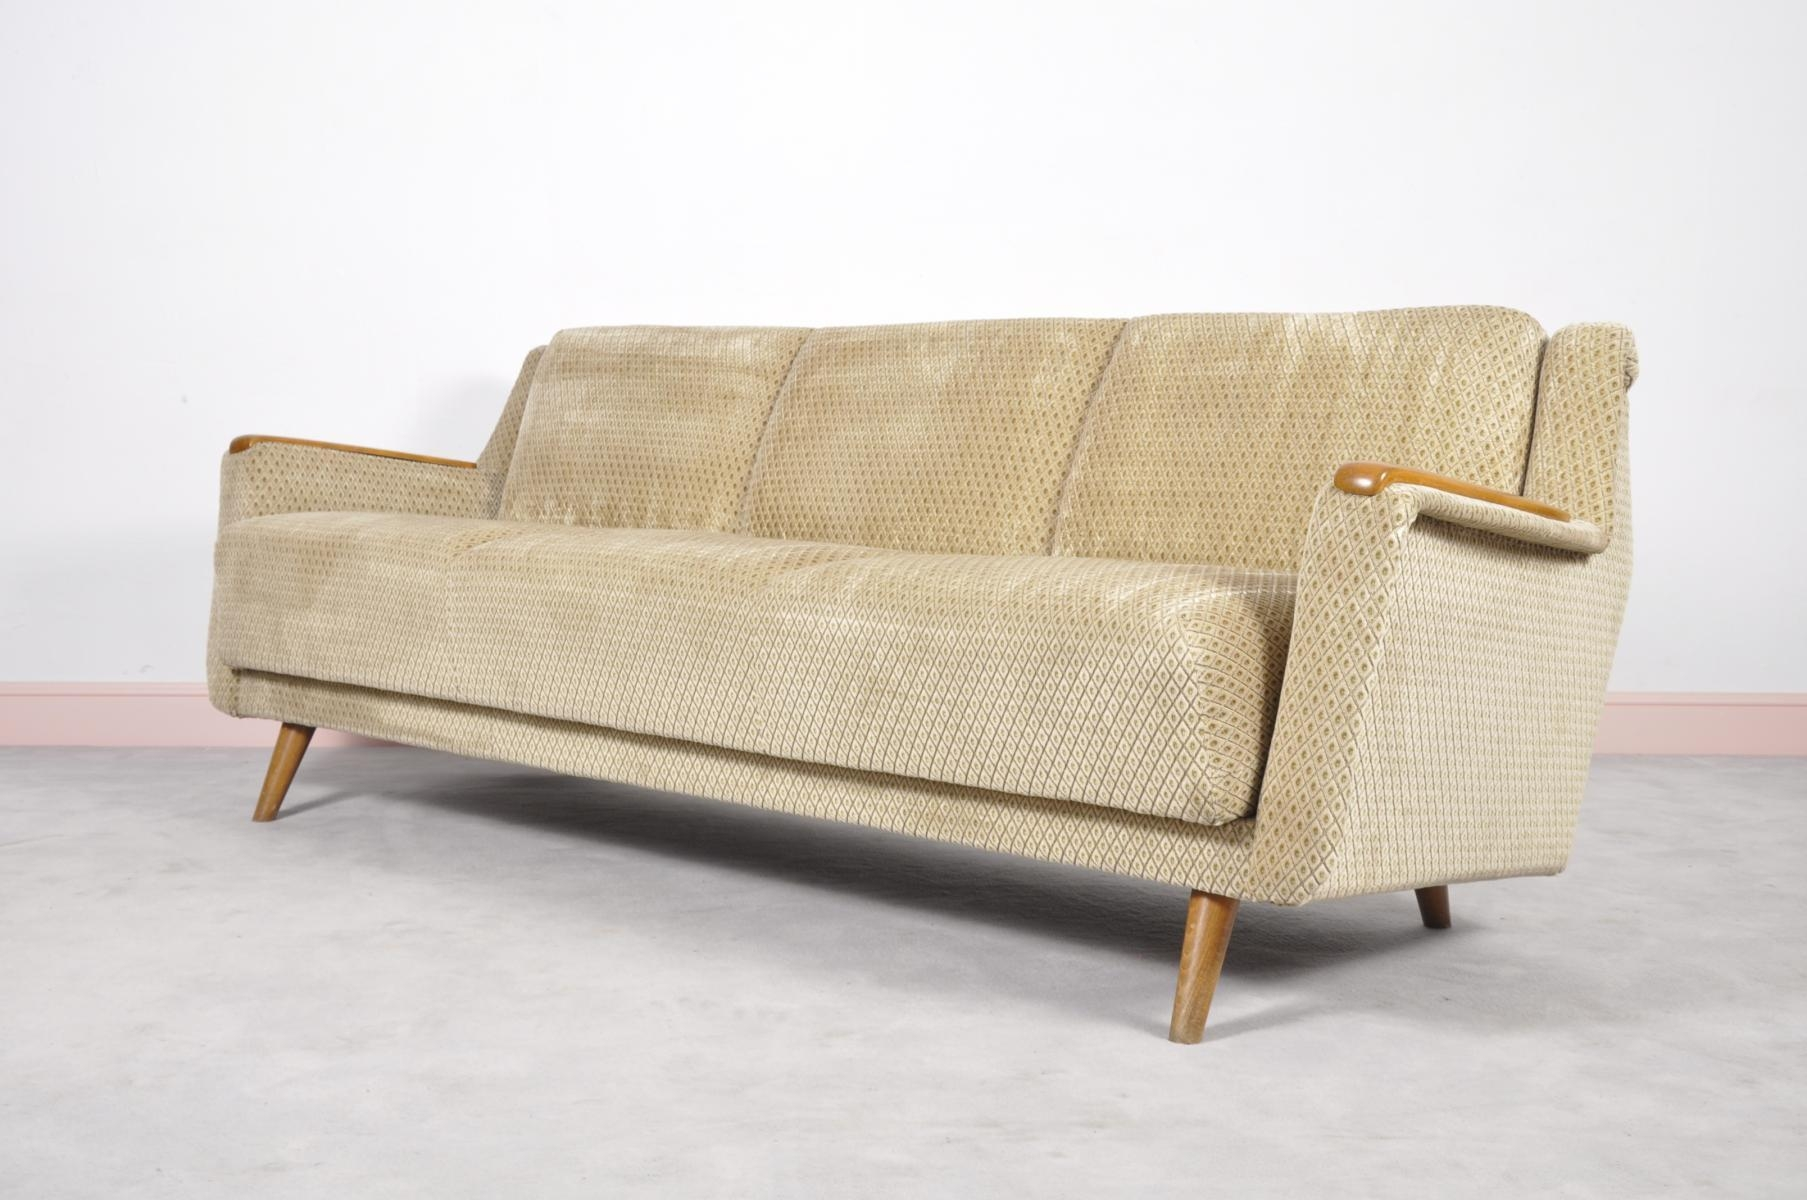 Mid Century Modern Danish Sofa Bed With Oak Arm Rests For Sale At Inside Modern Danish Sofas (View 9 of 20)